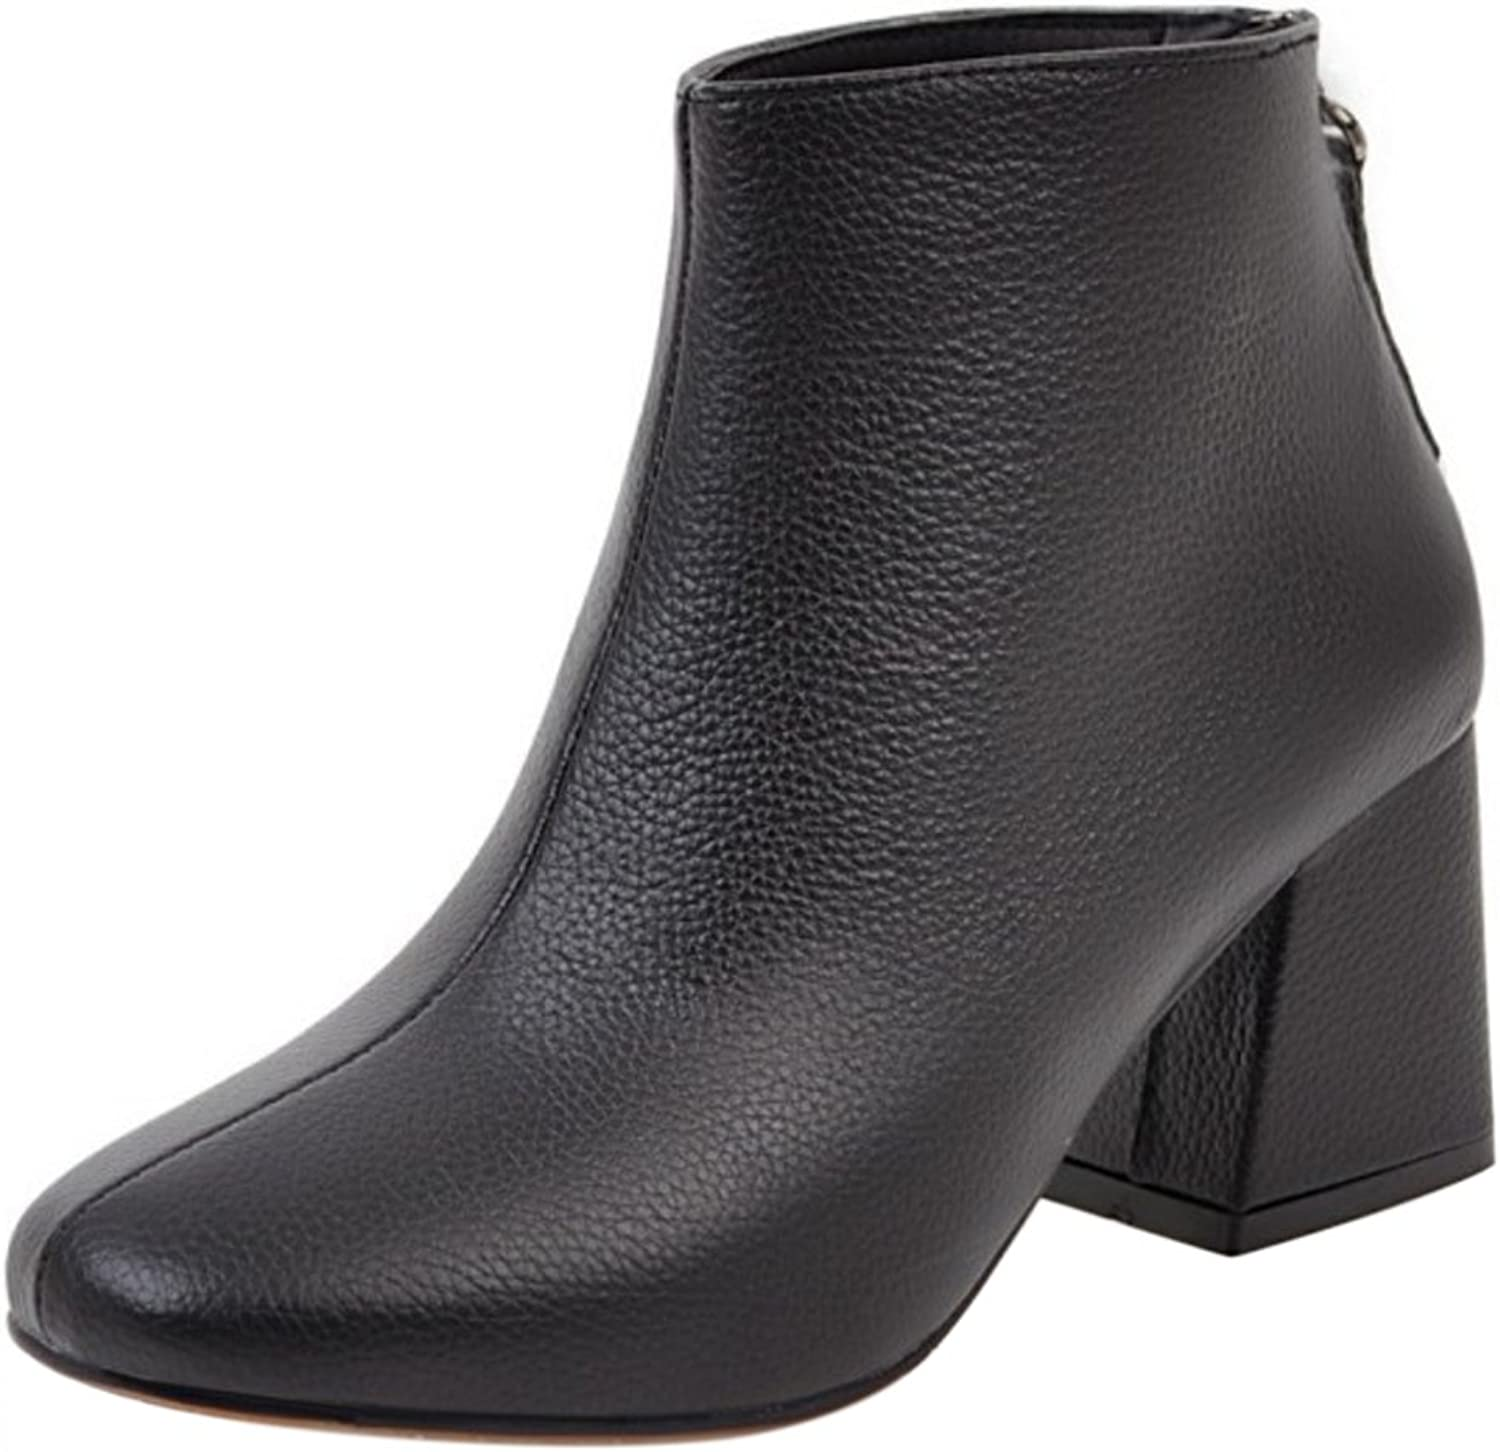 RizaBina Women Classic Block Heel Ankle High Boots Zipper